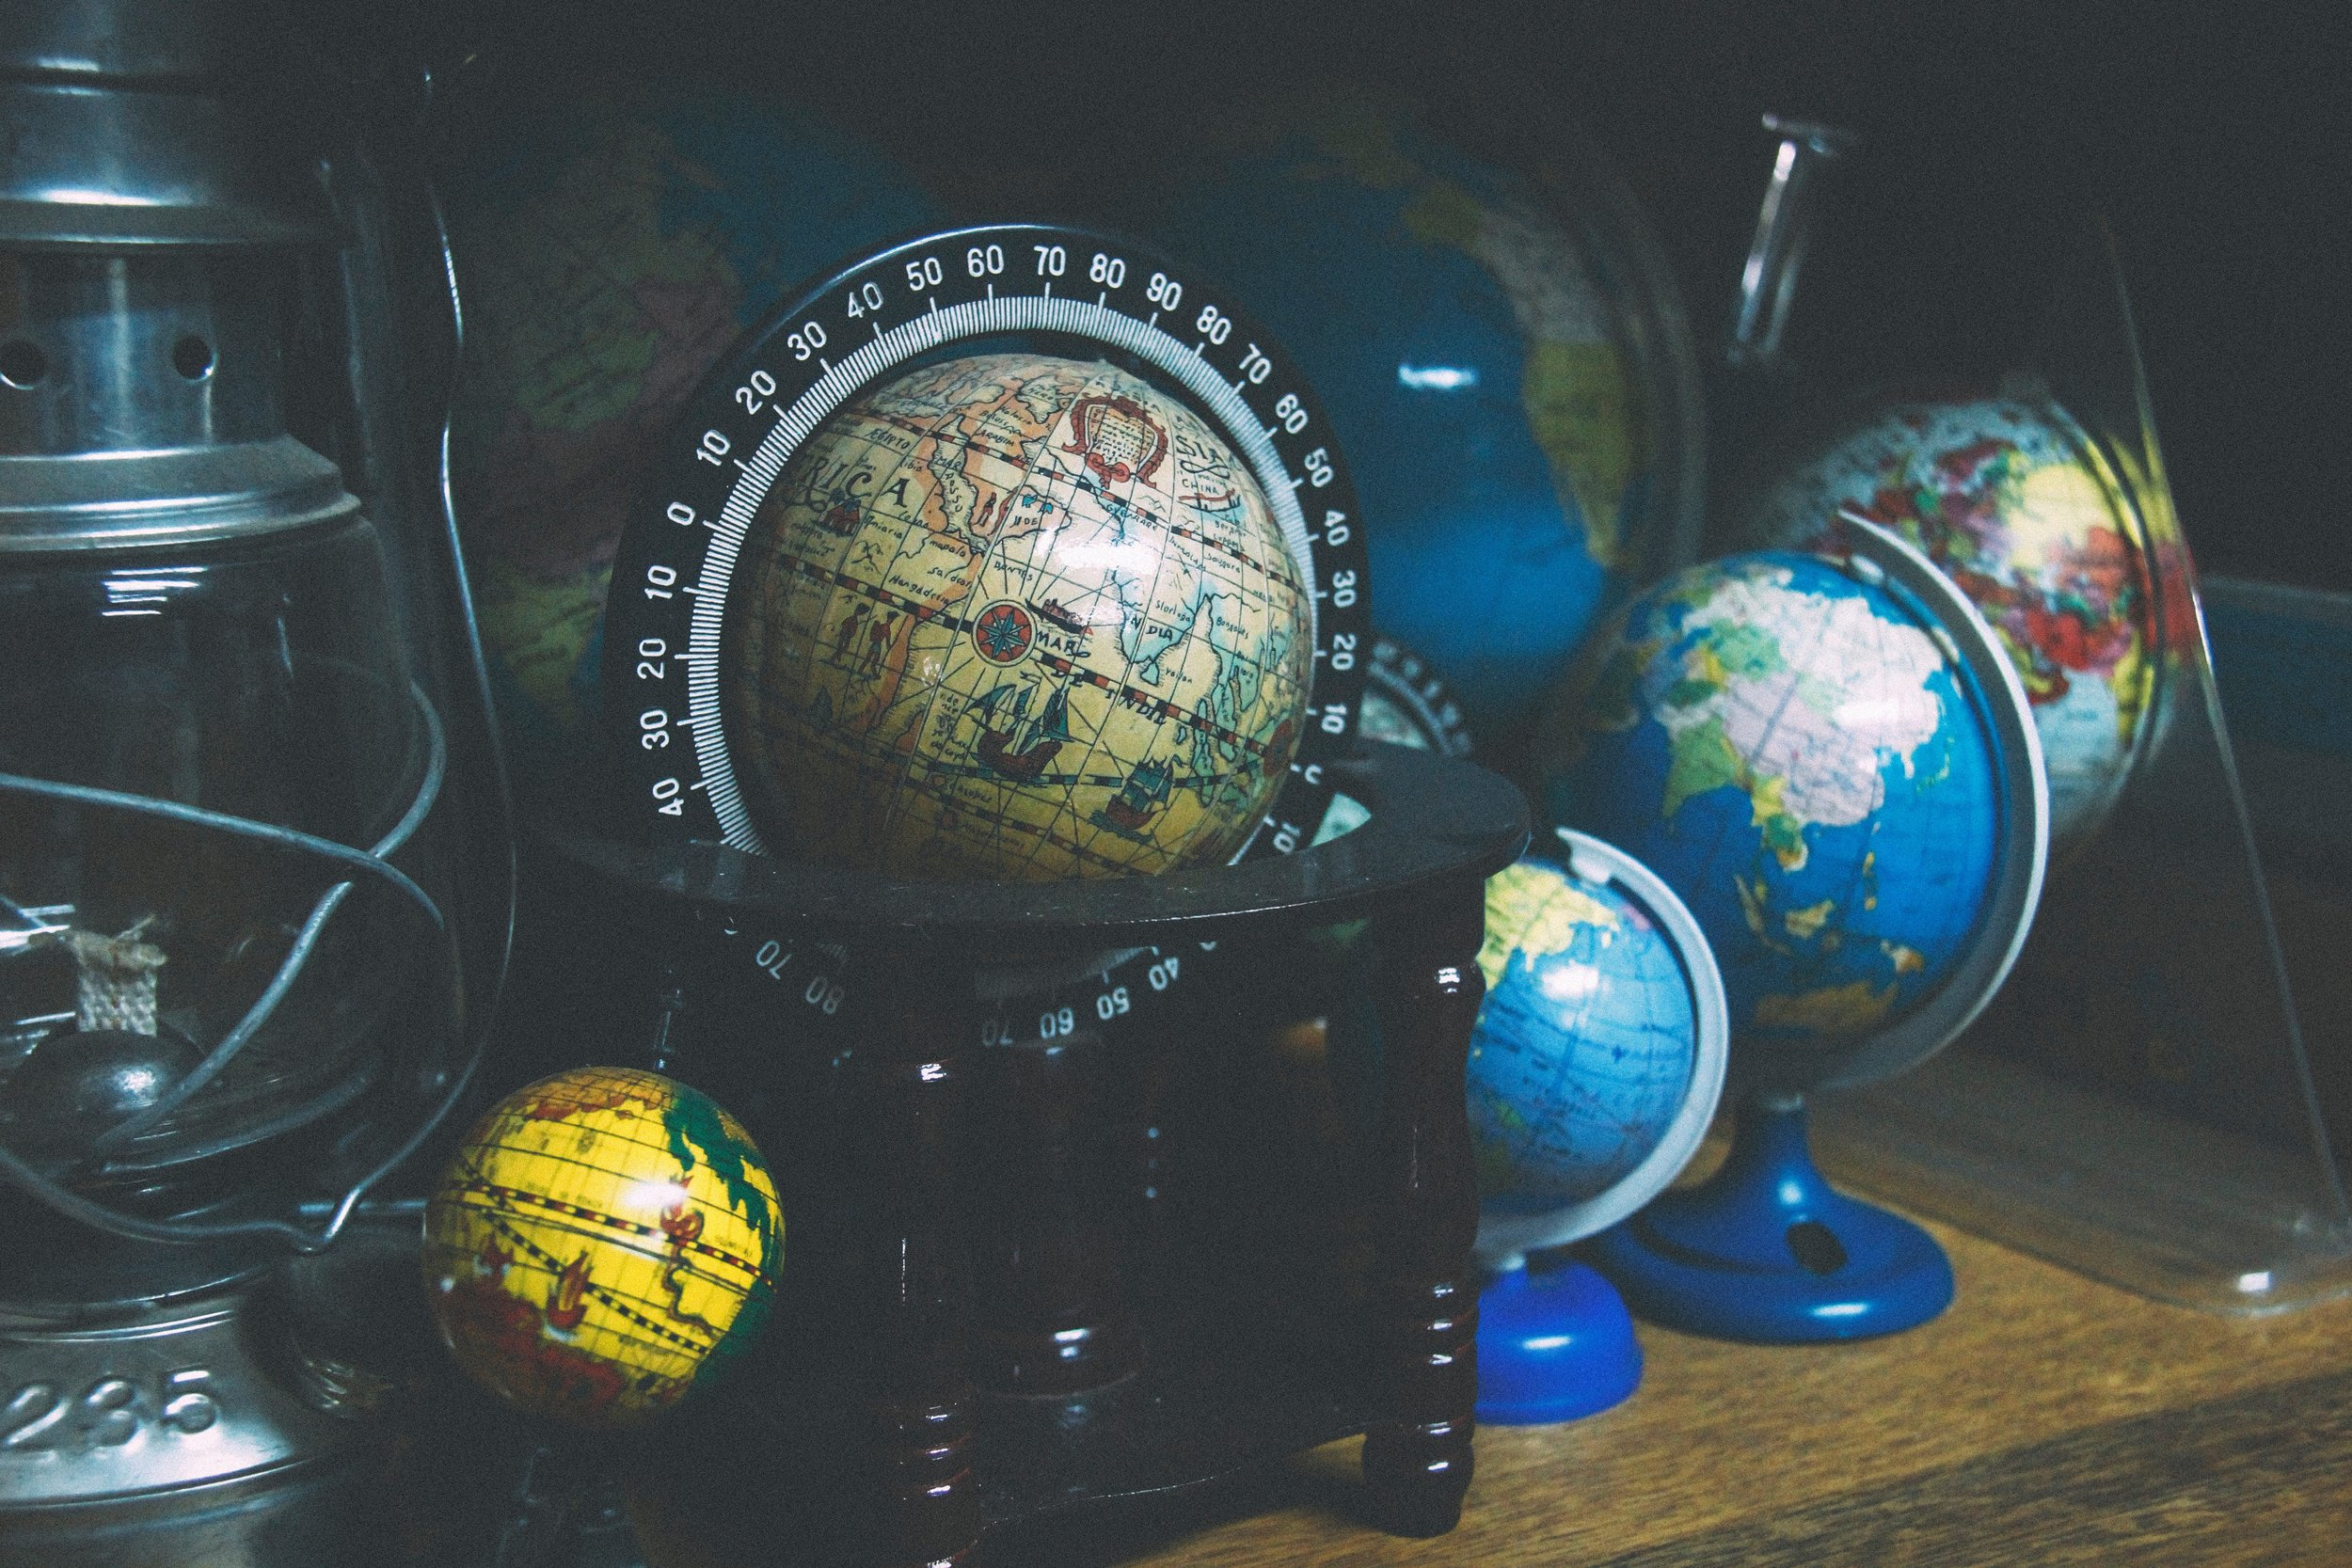 Here is my world view -